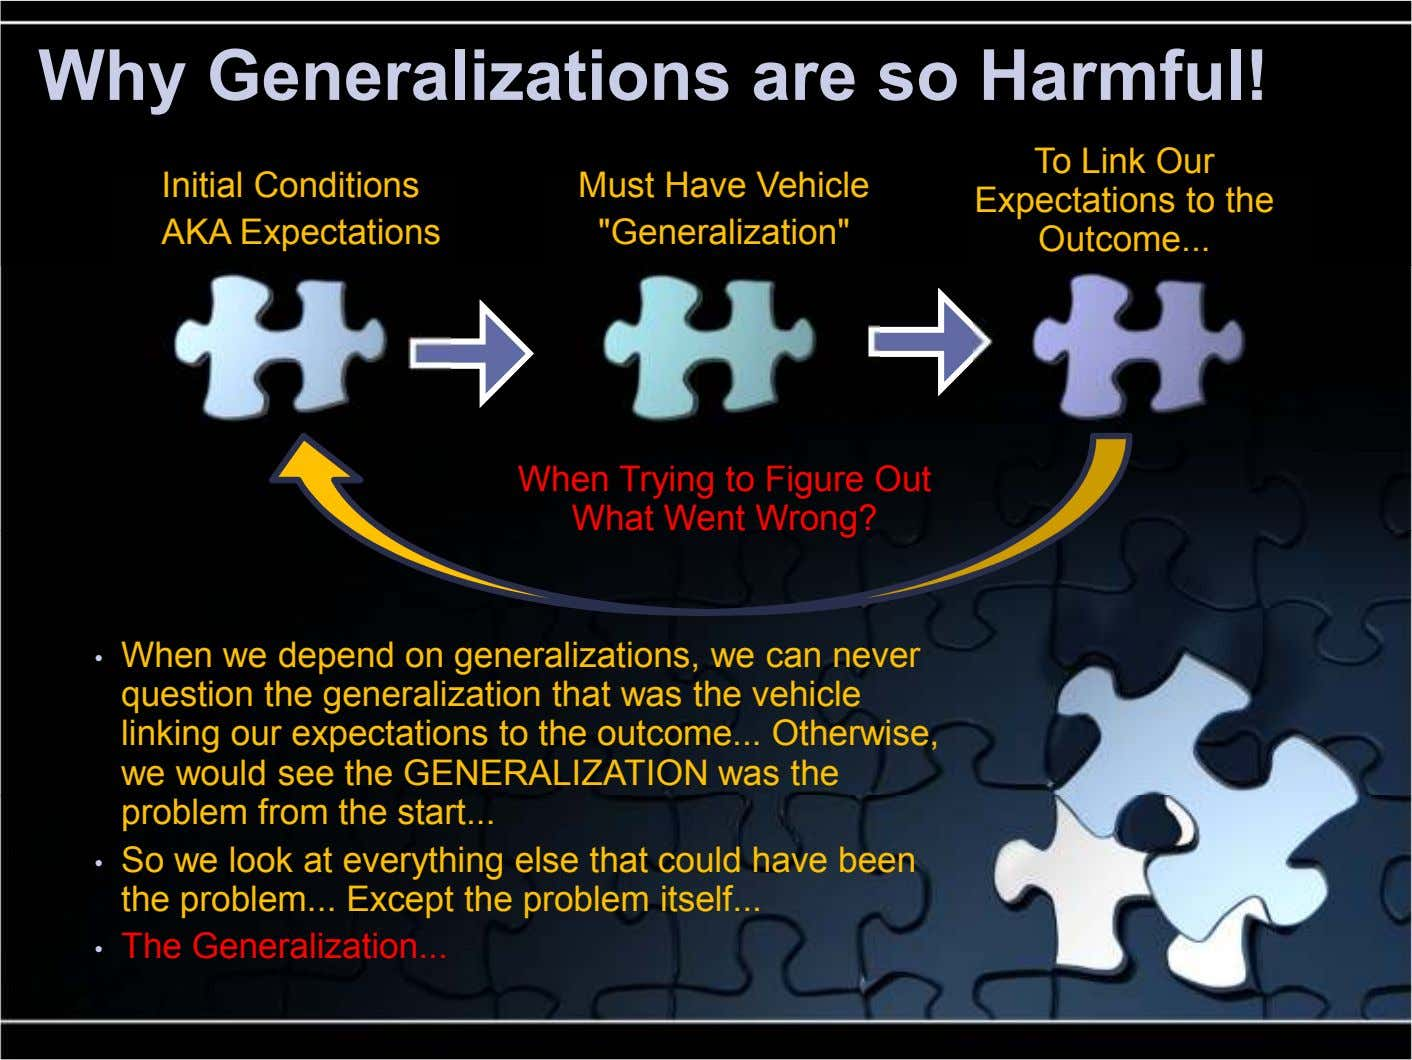 "Why Generalizations are so Harmful! Initial Conditions AKA Expectations Must Have Vehicle ""Generalization"" To Link Our"